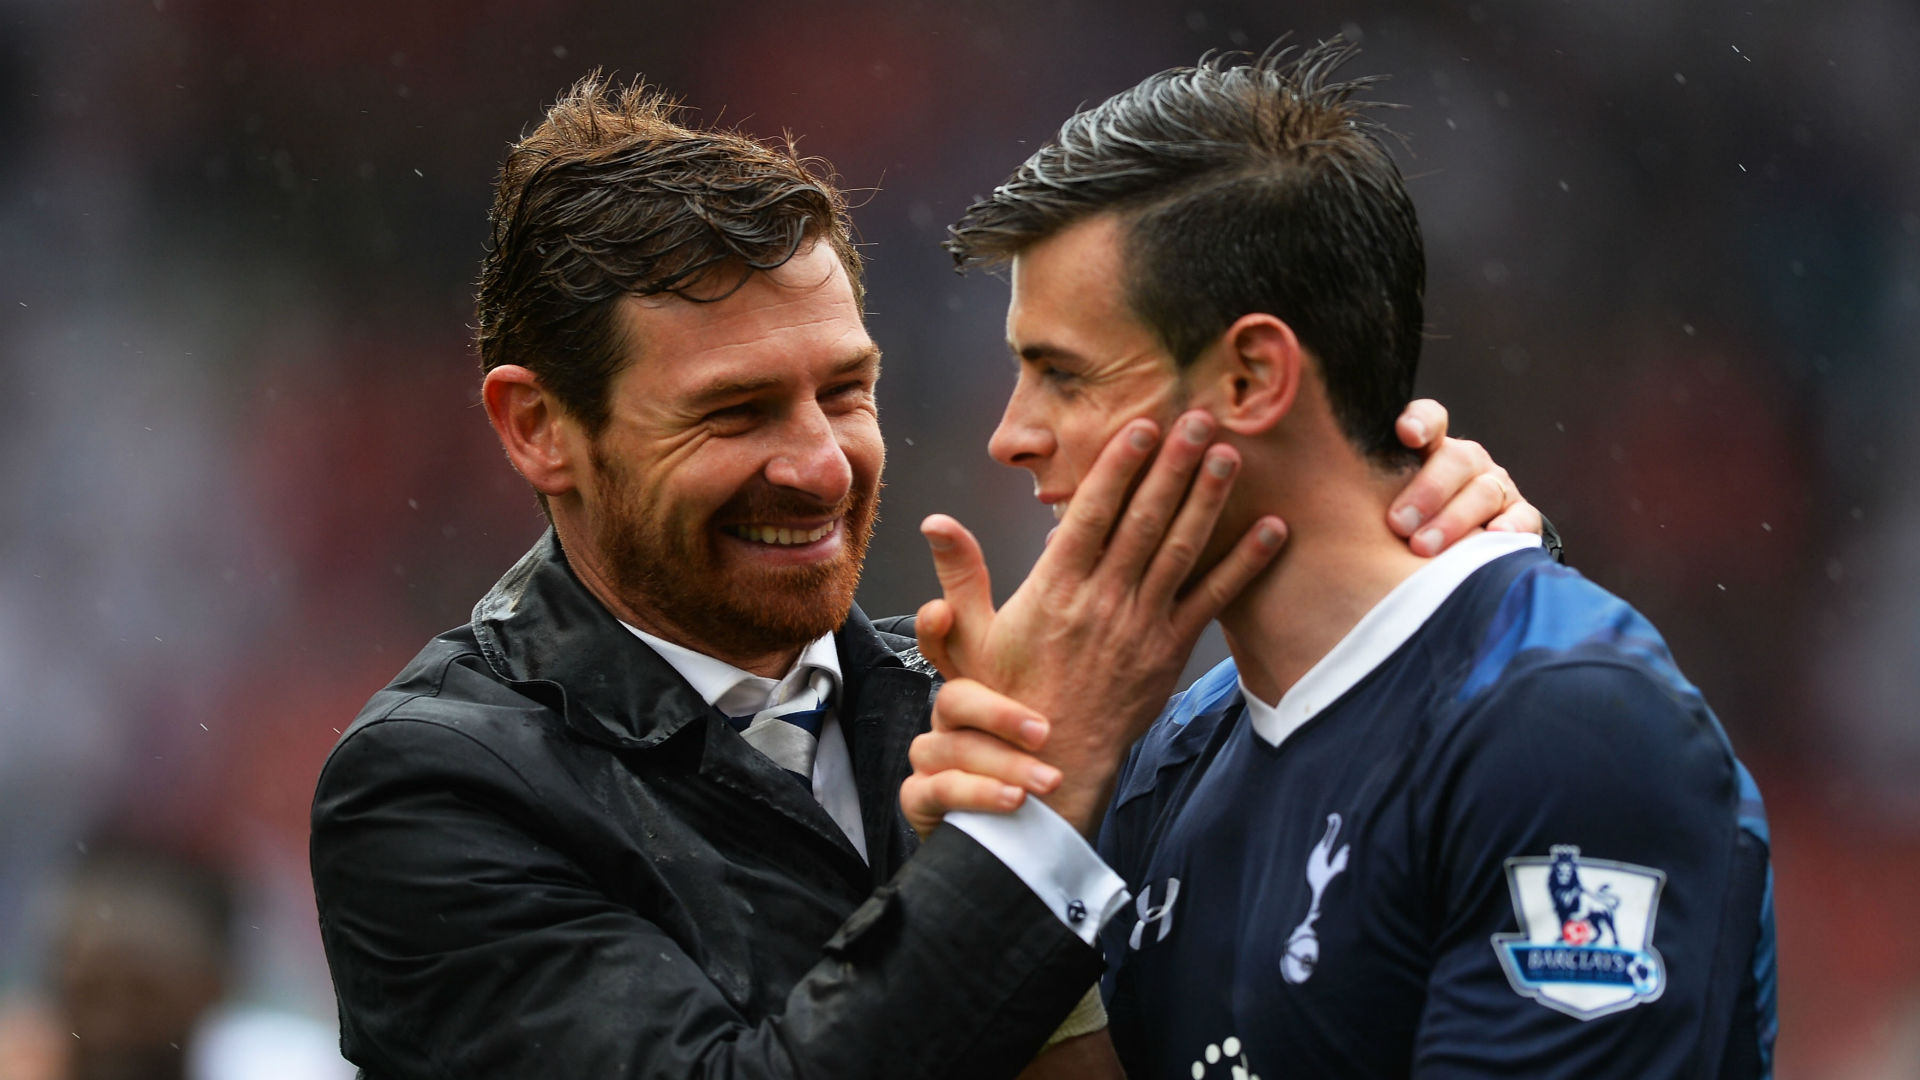 Villas-Boas expecting Bale to make Premier League return